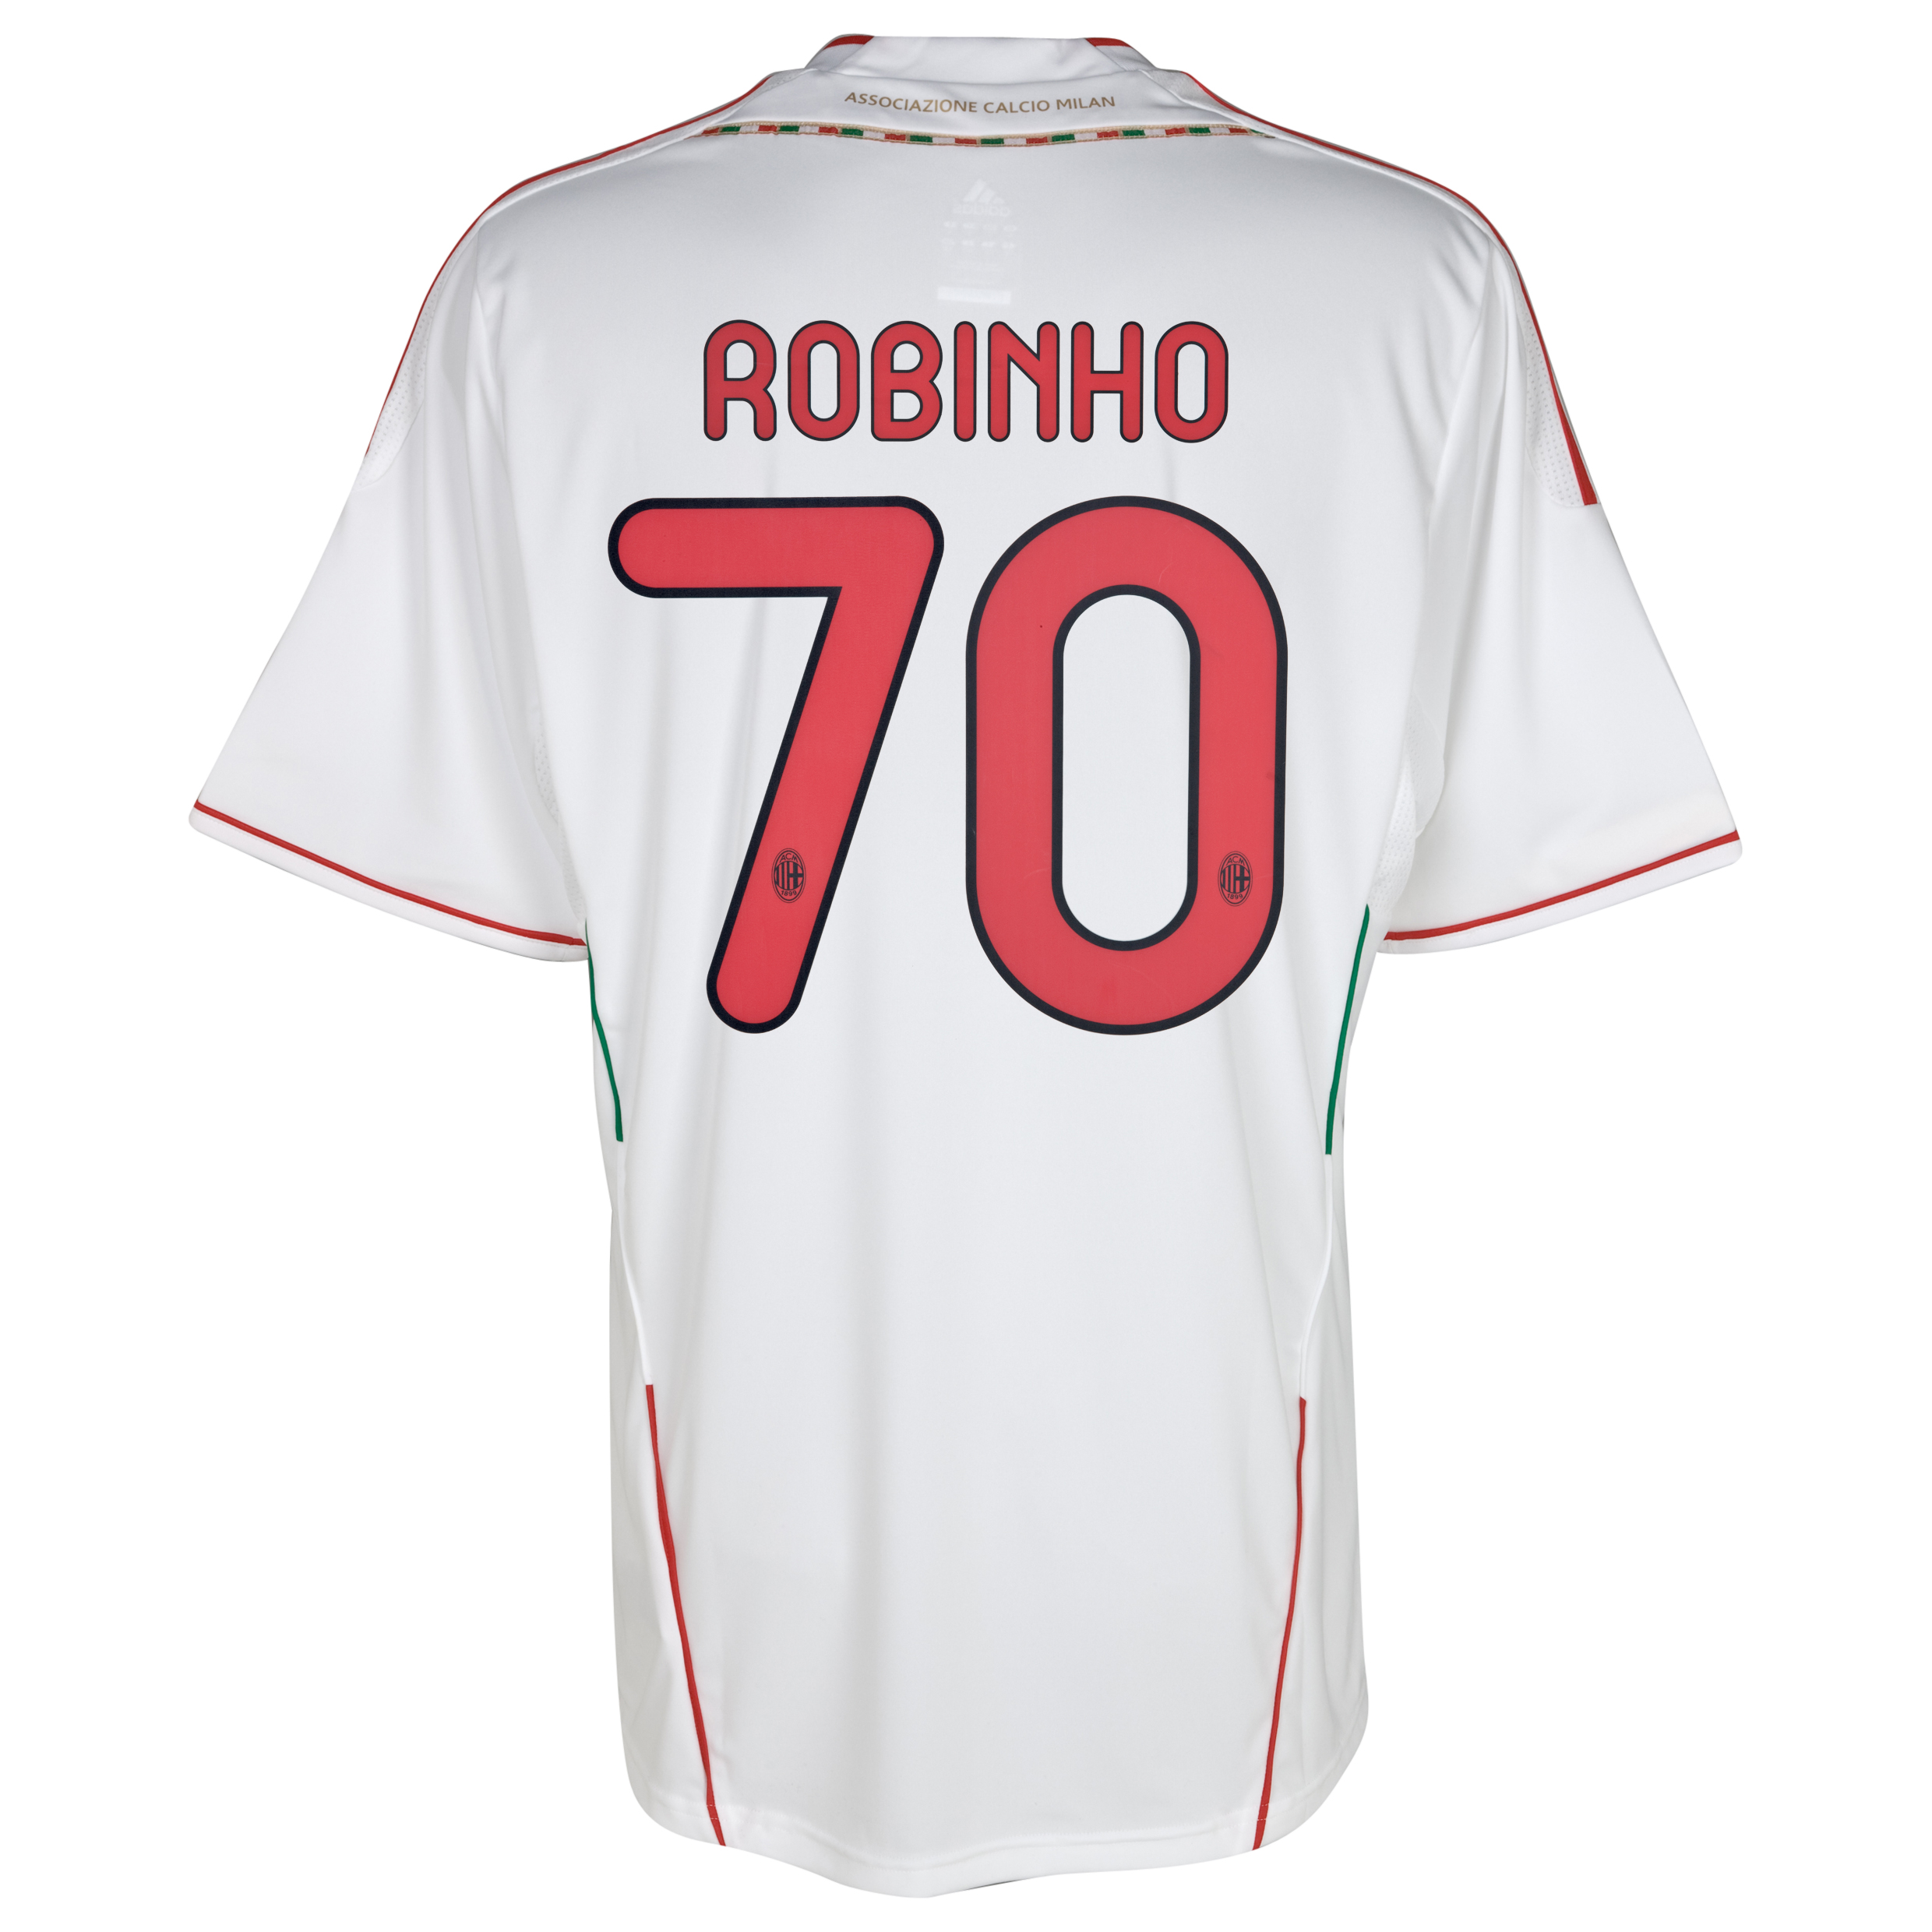 AC Milan Away Shirt 2011/12 - Kids with Robinho 70 printing